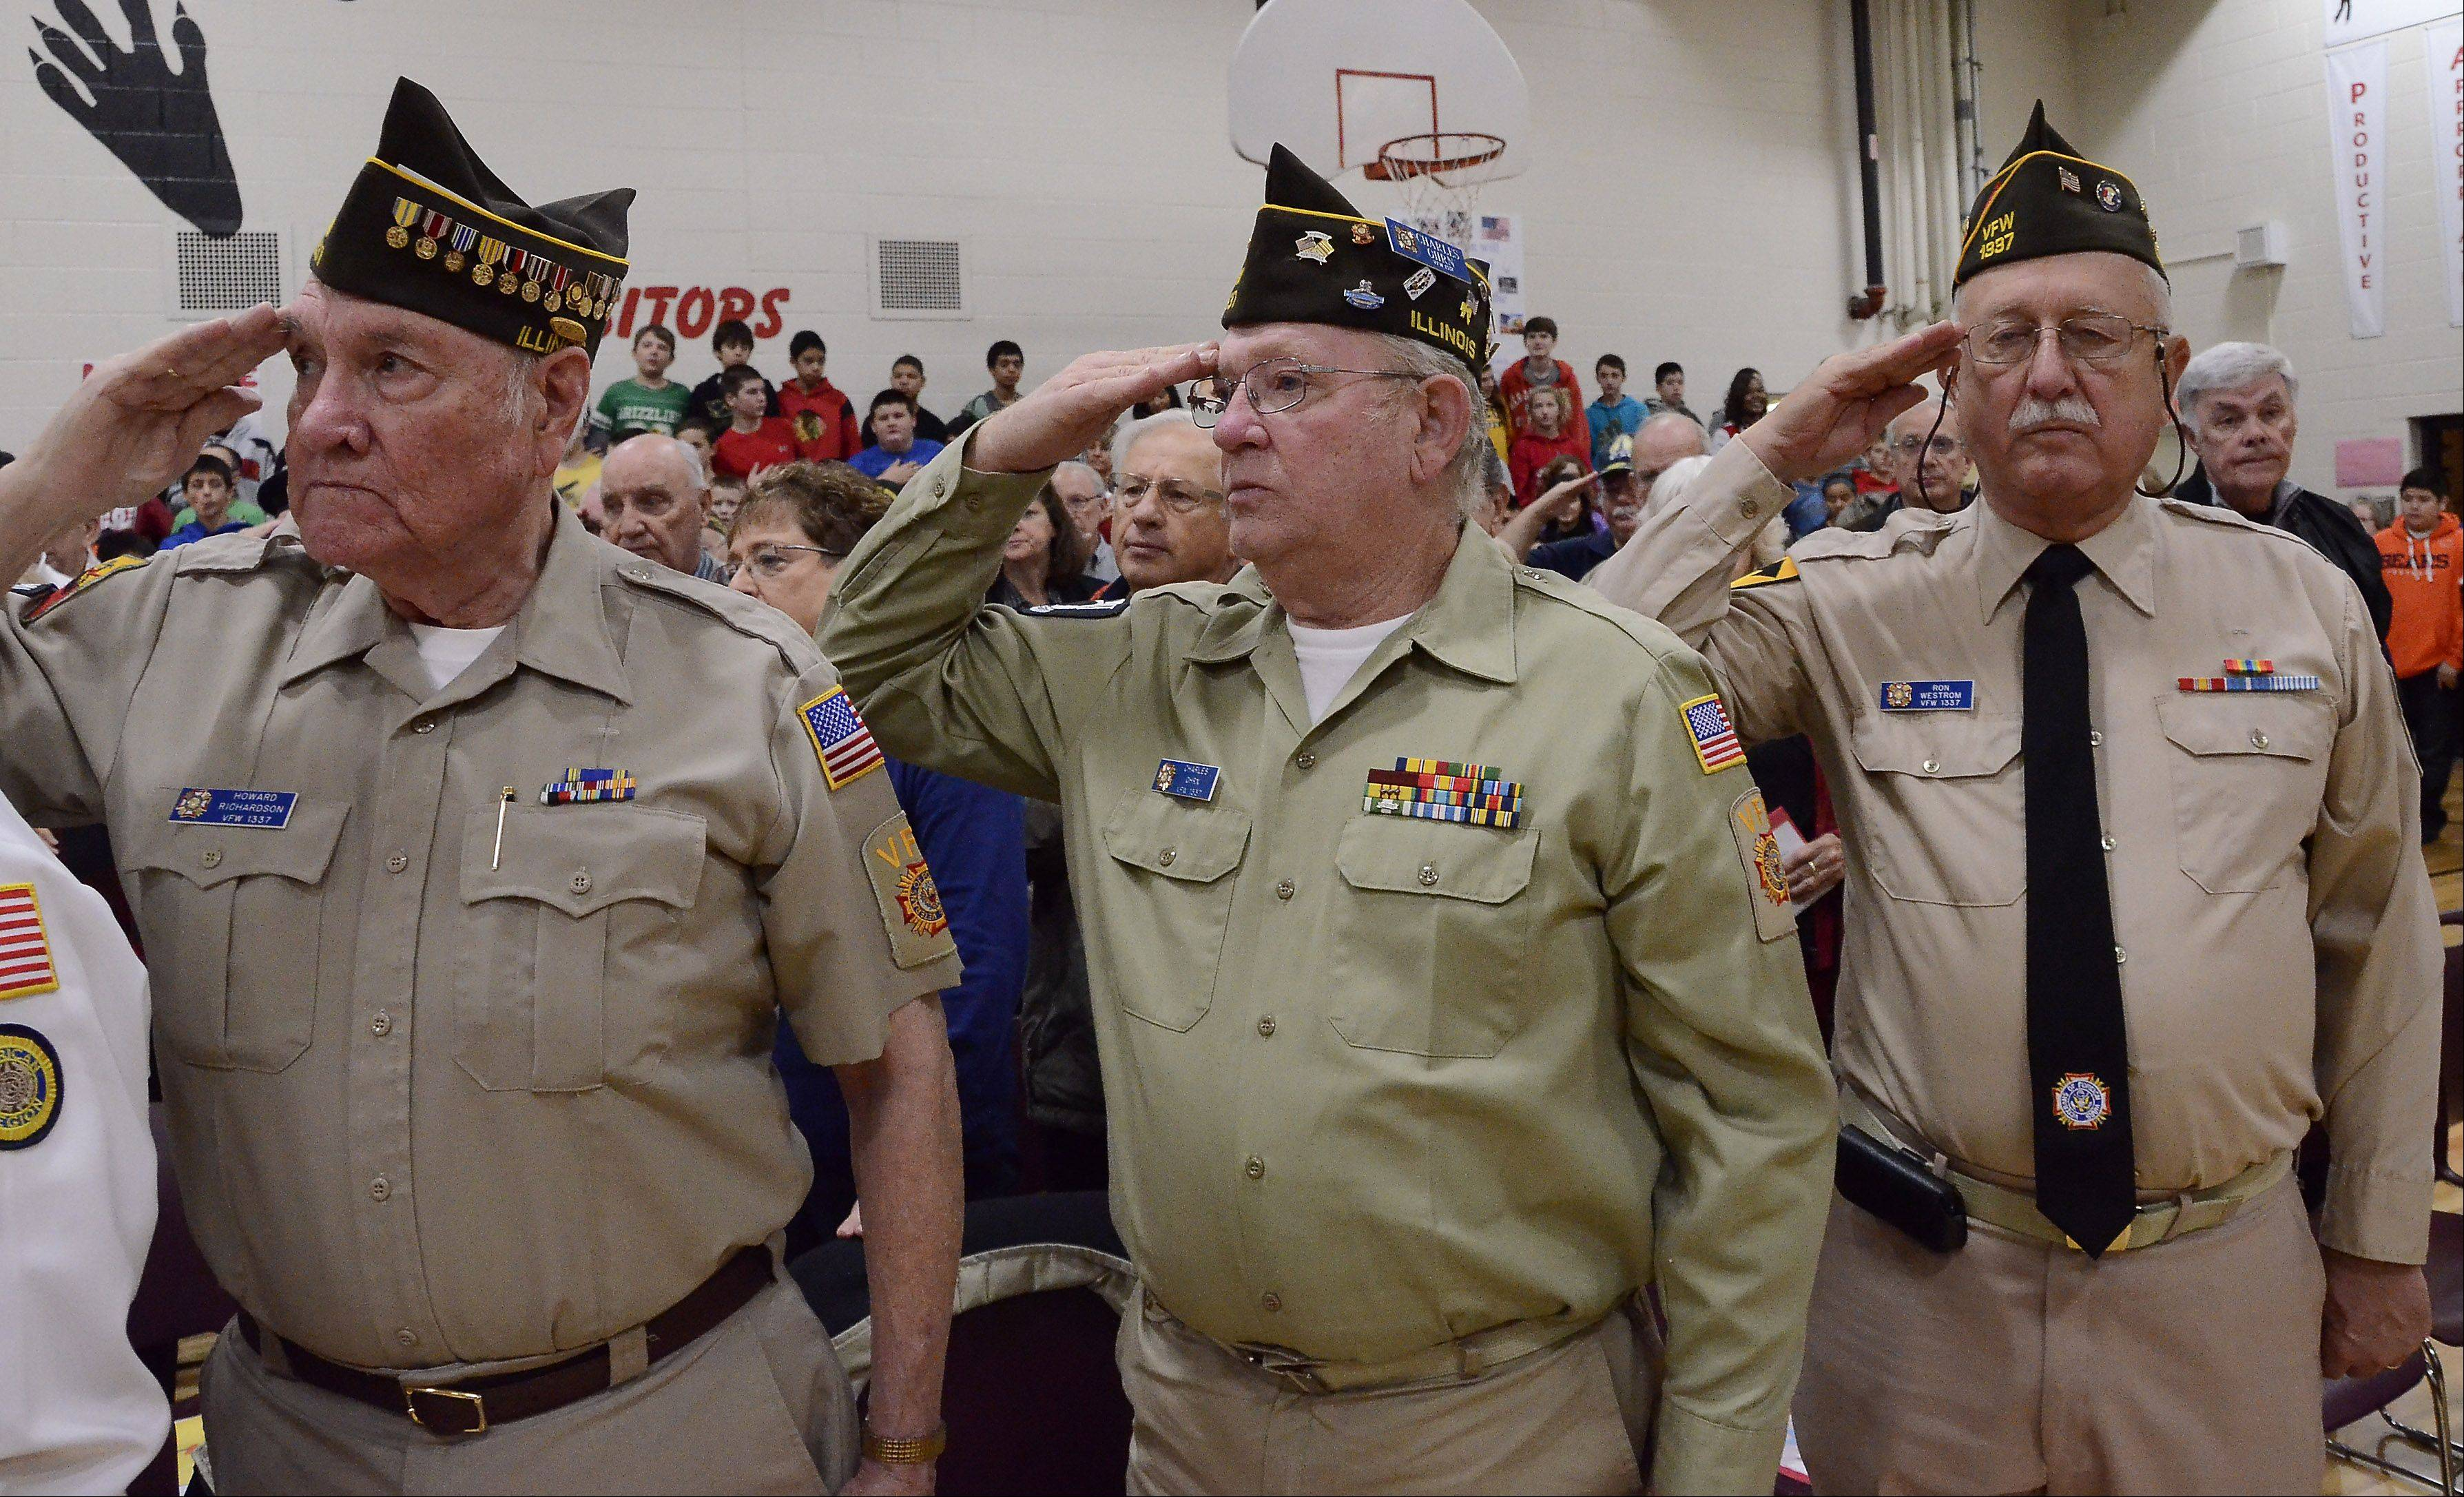 Members of Veterans of Foreign Wars Post 1337 Howard Richardson of Mount Prospect, left, Charles Ohrn of Rolling Meadows and Ron Westrom of Mount Prospect salute the colors at the Veterans Day breakfast and assembly Friday at MacArthur Middle School in Prospect Heights.